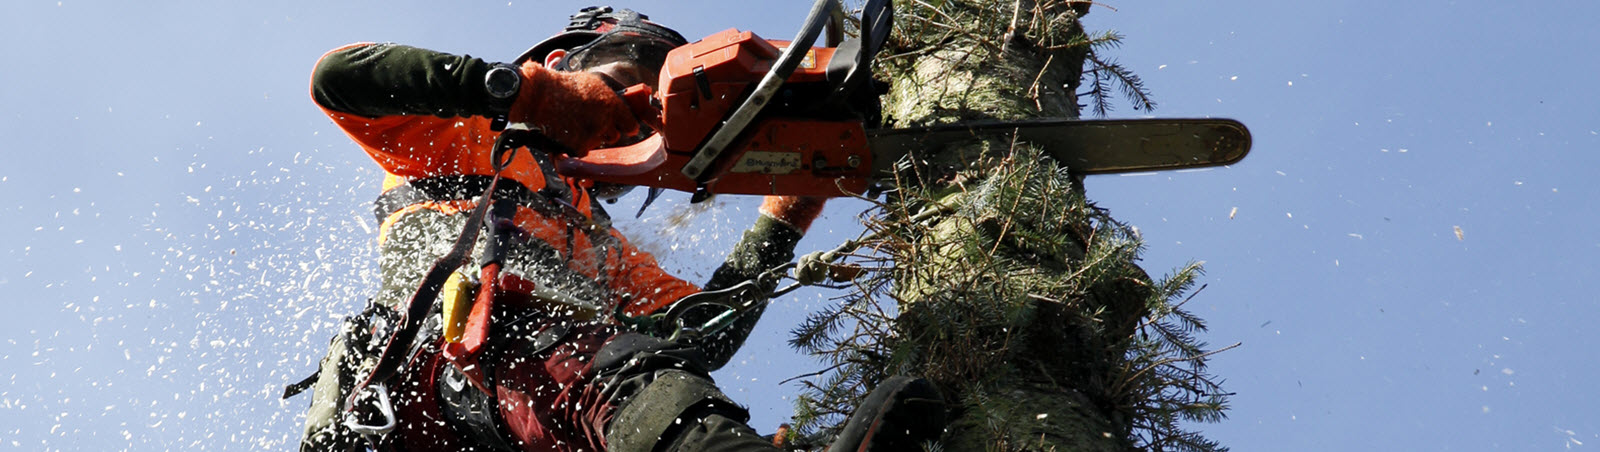 Tree-surgeon-aberdeen.jpg